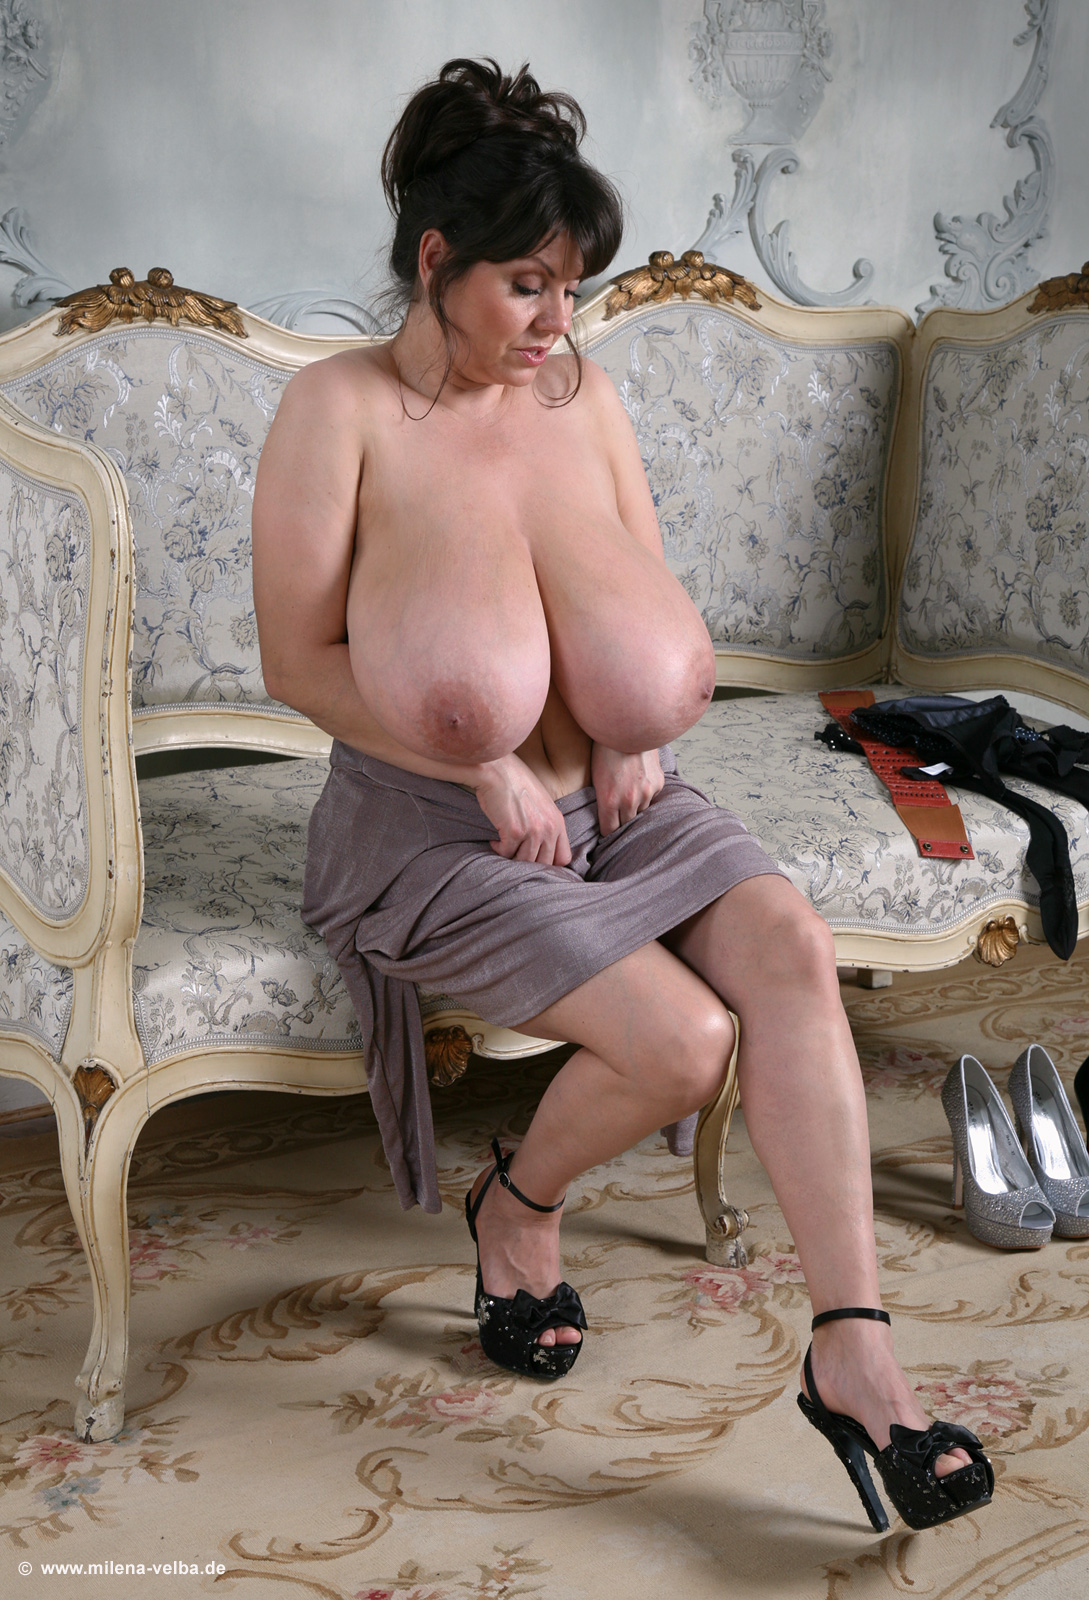 image Denise davies chubby with big natural tits threesome dp